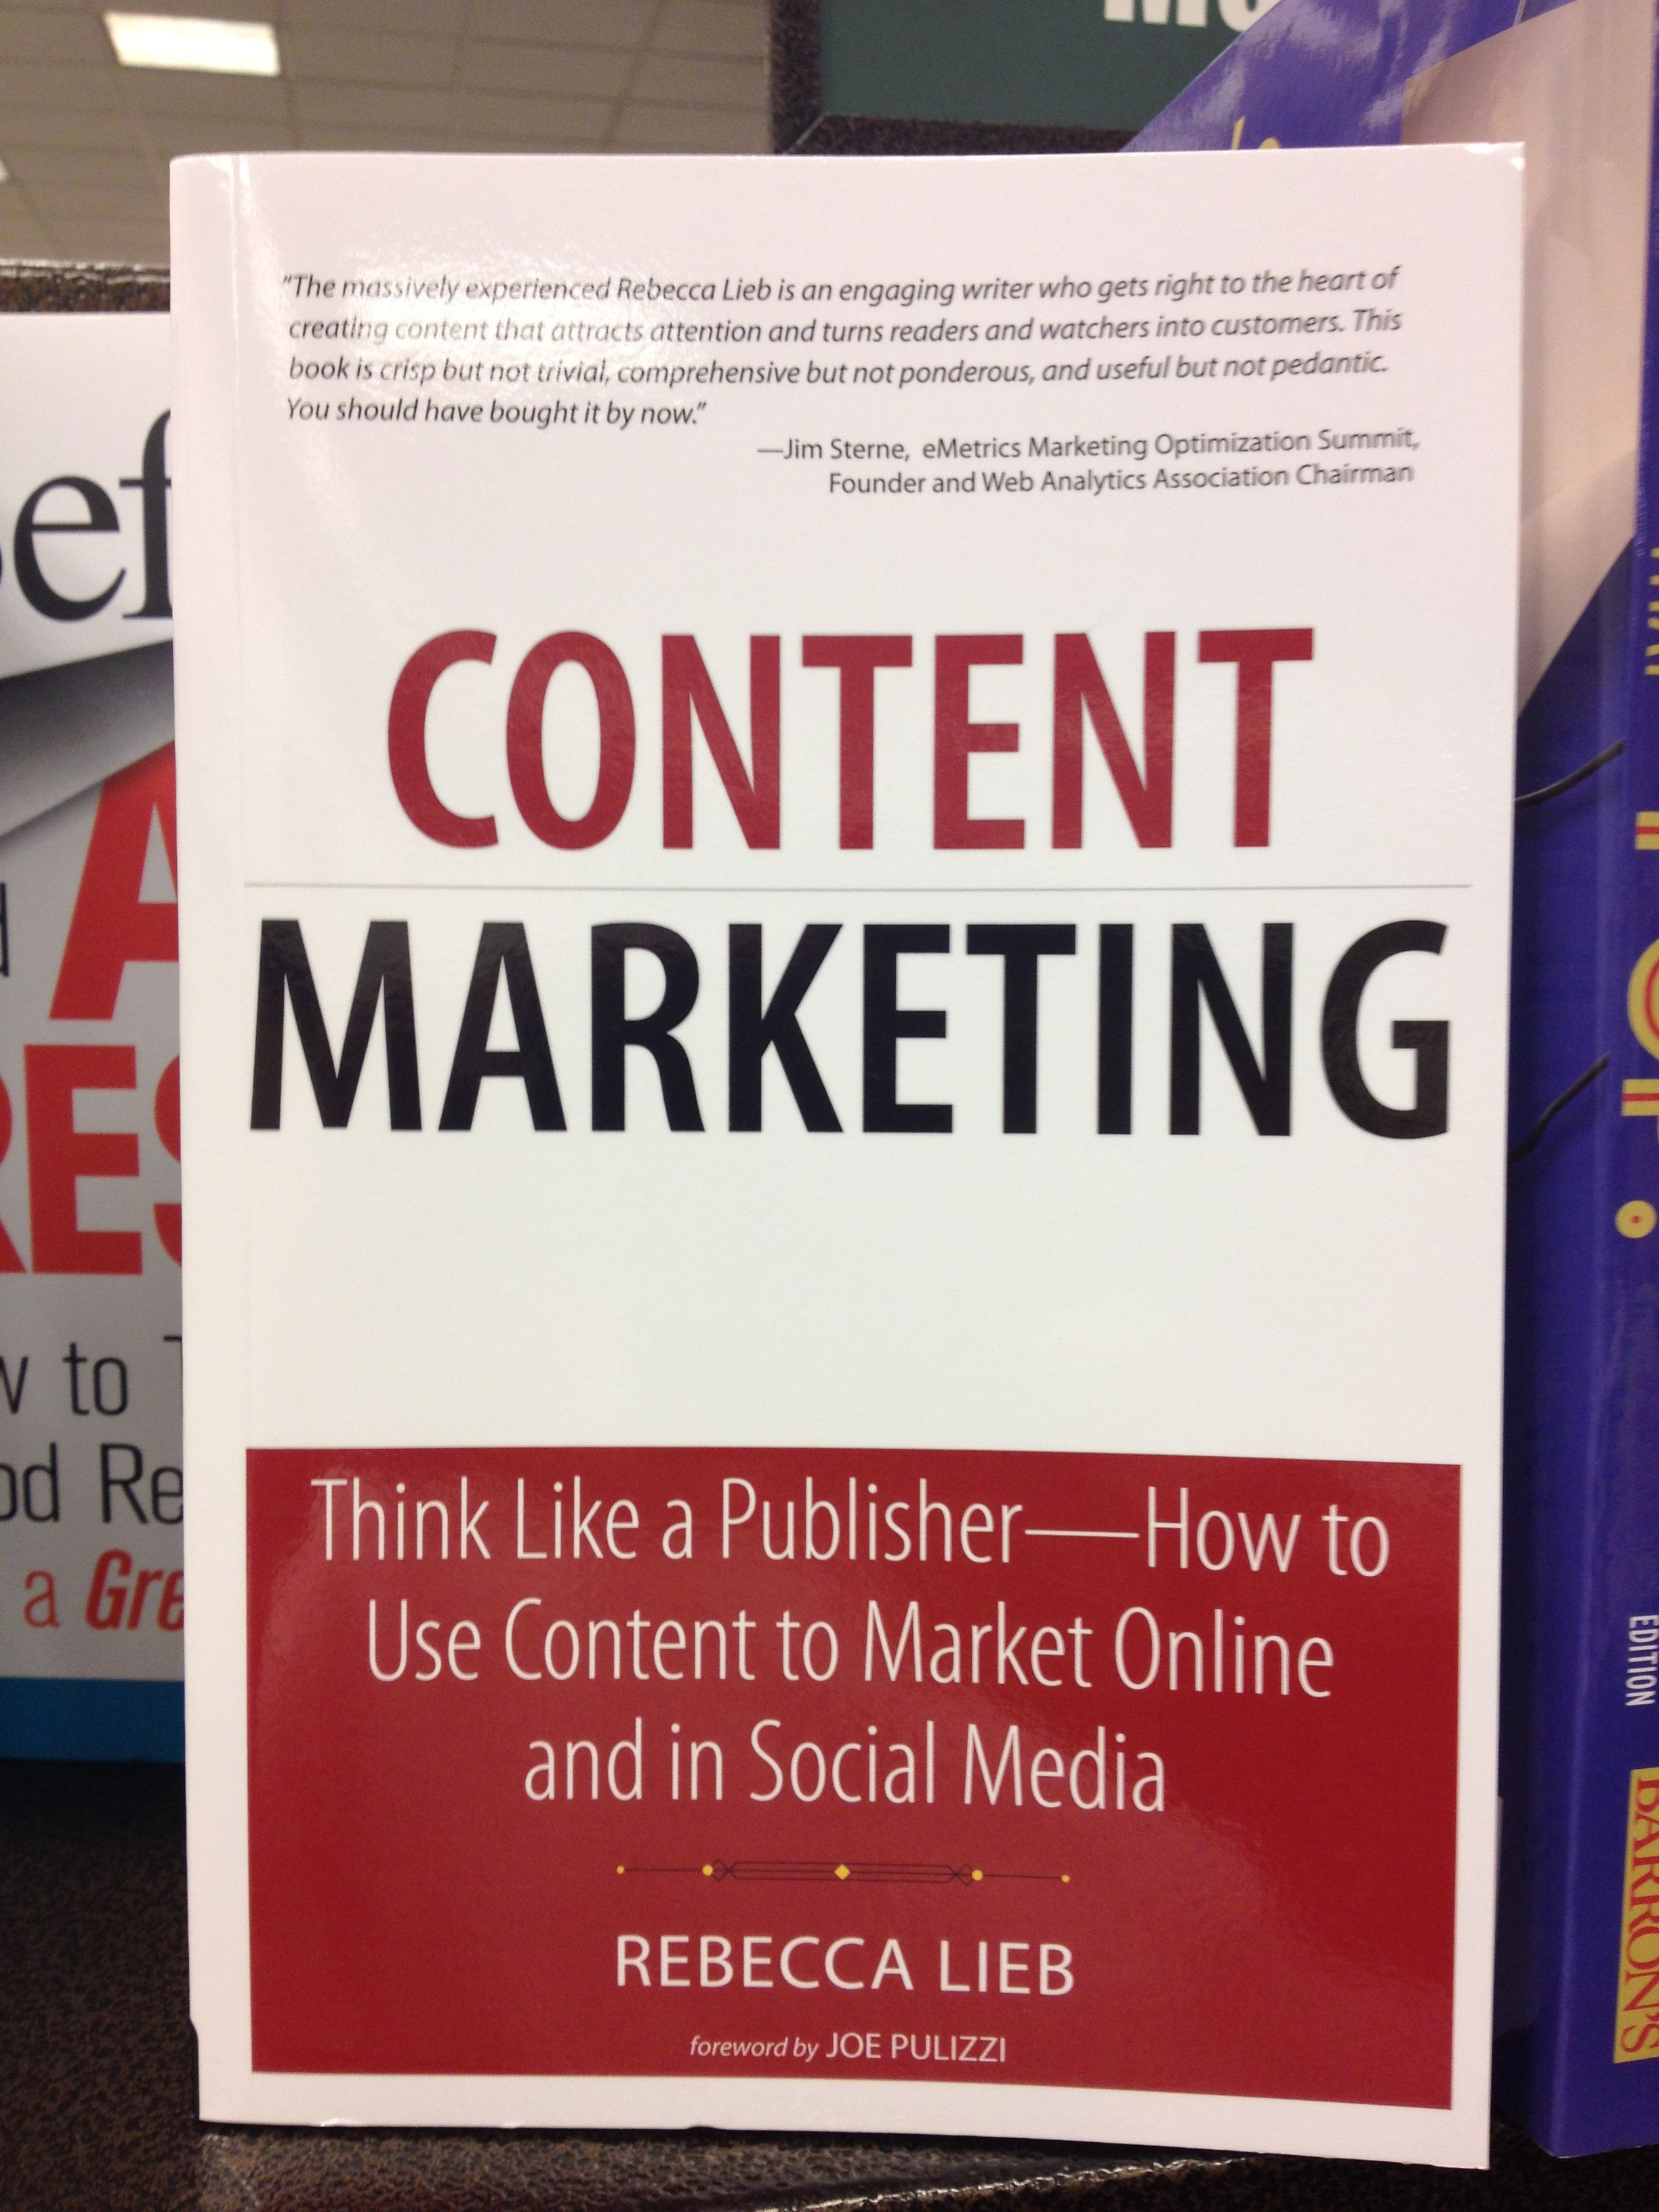 Otro libro disponible sobre Content marketing